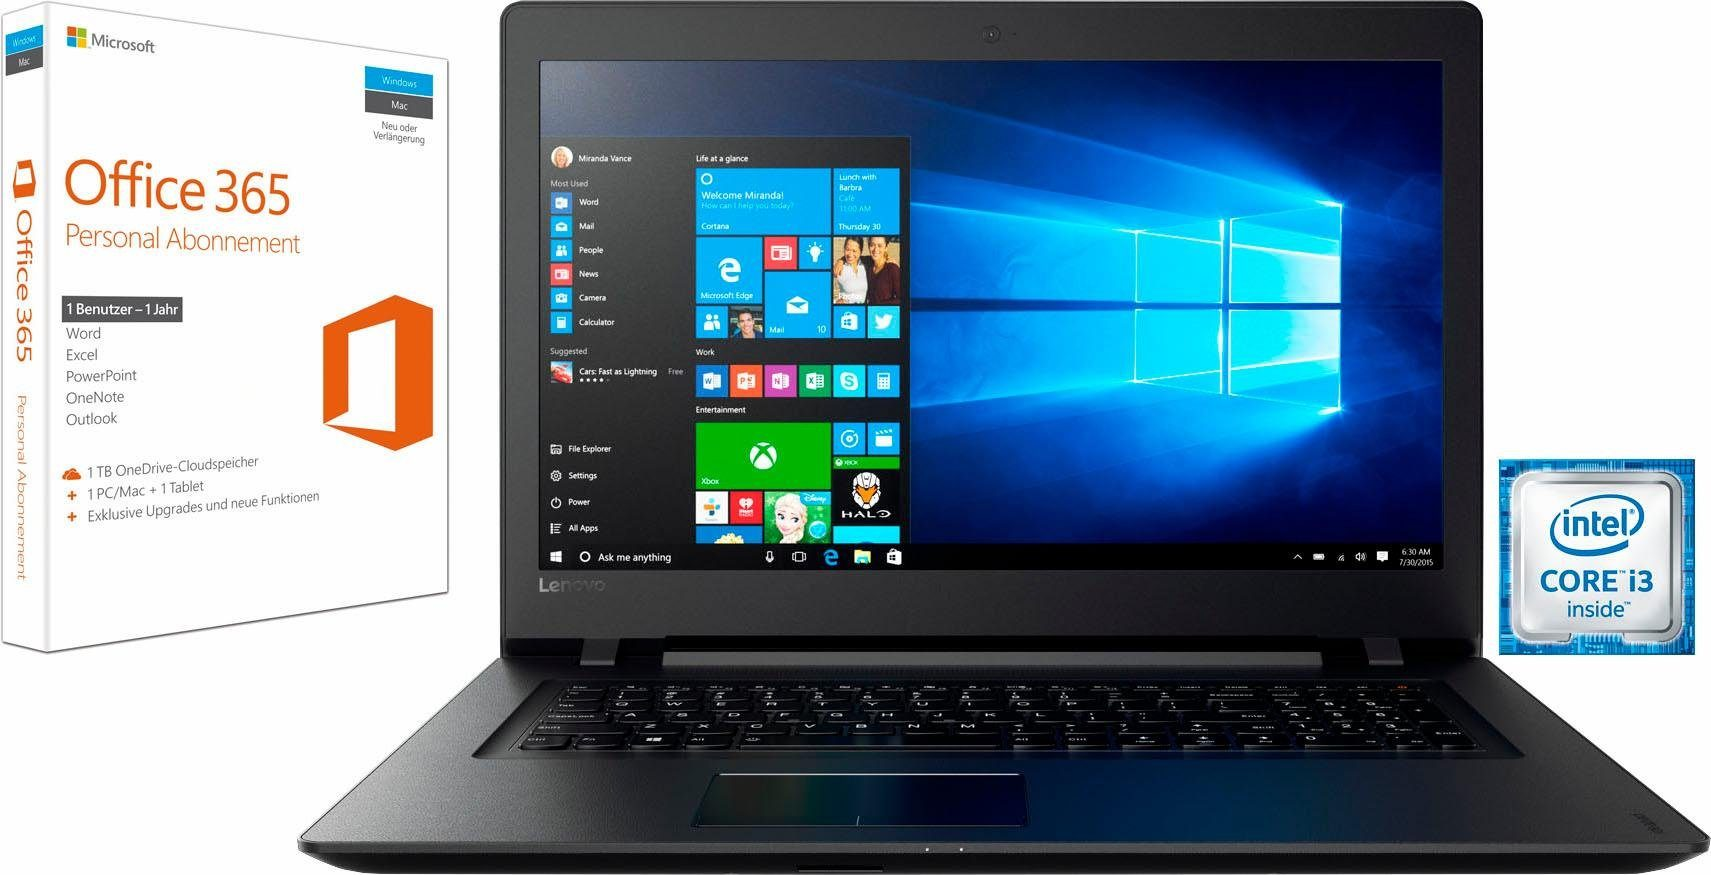 Lenovo 110-17IKB Notebook (43,9 cm/17,3 Zoll, Intel Core i3, R5 M430, 1000 GB HDD)